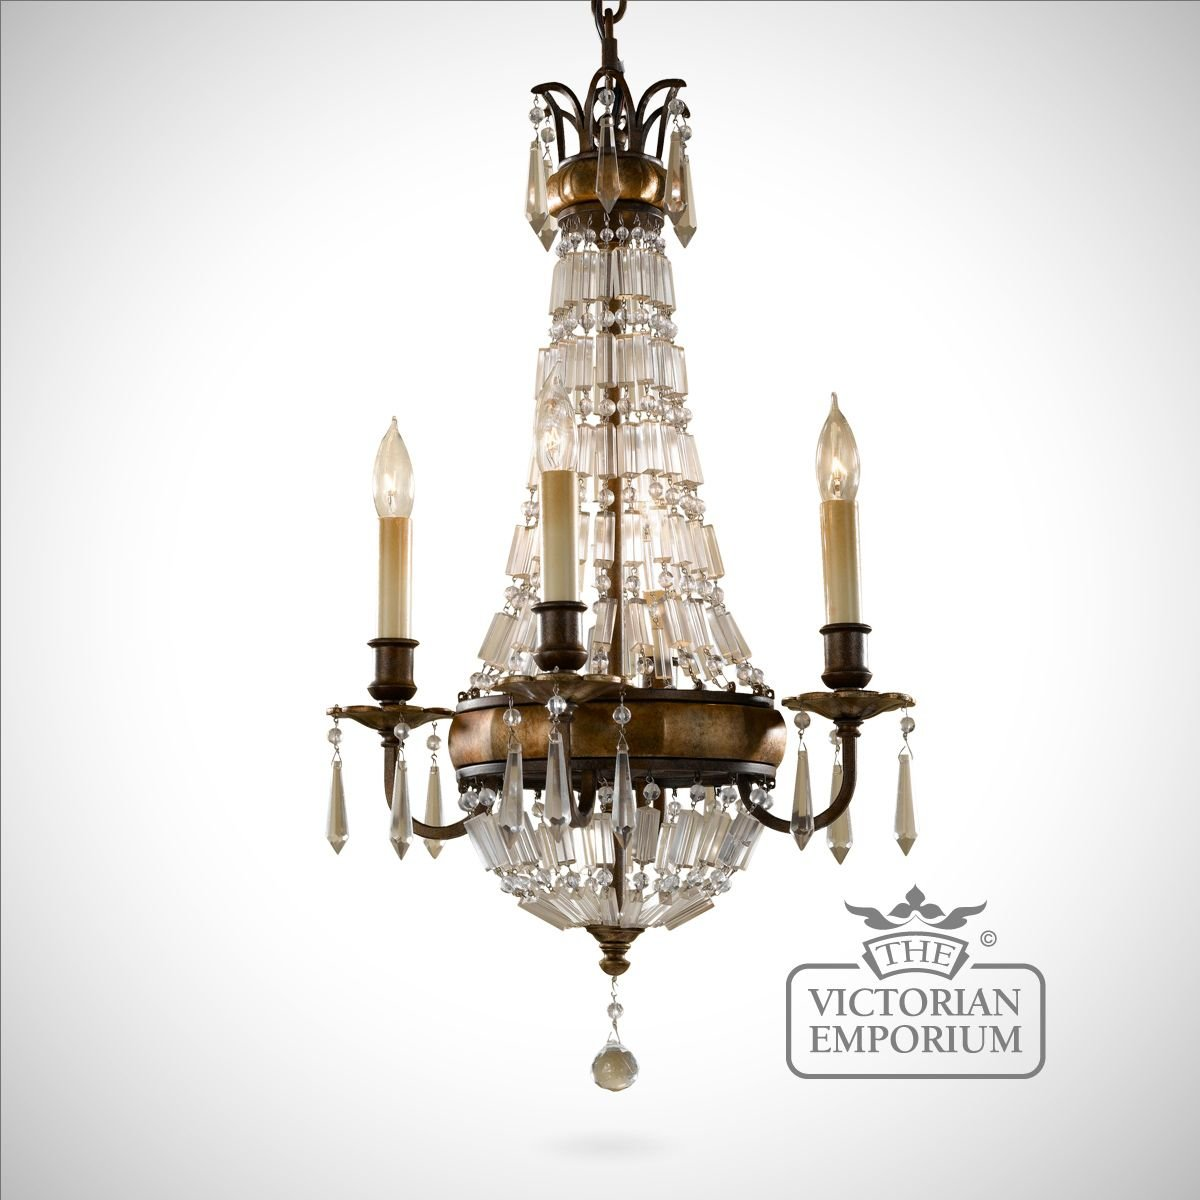 Bronze and antique quartz small chandelier ceiling chandeliers - Can light chandelier ...